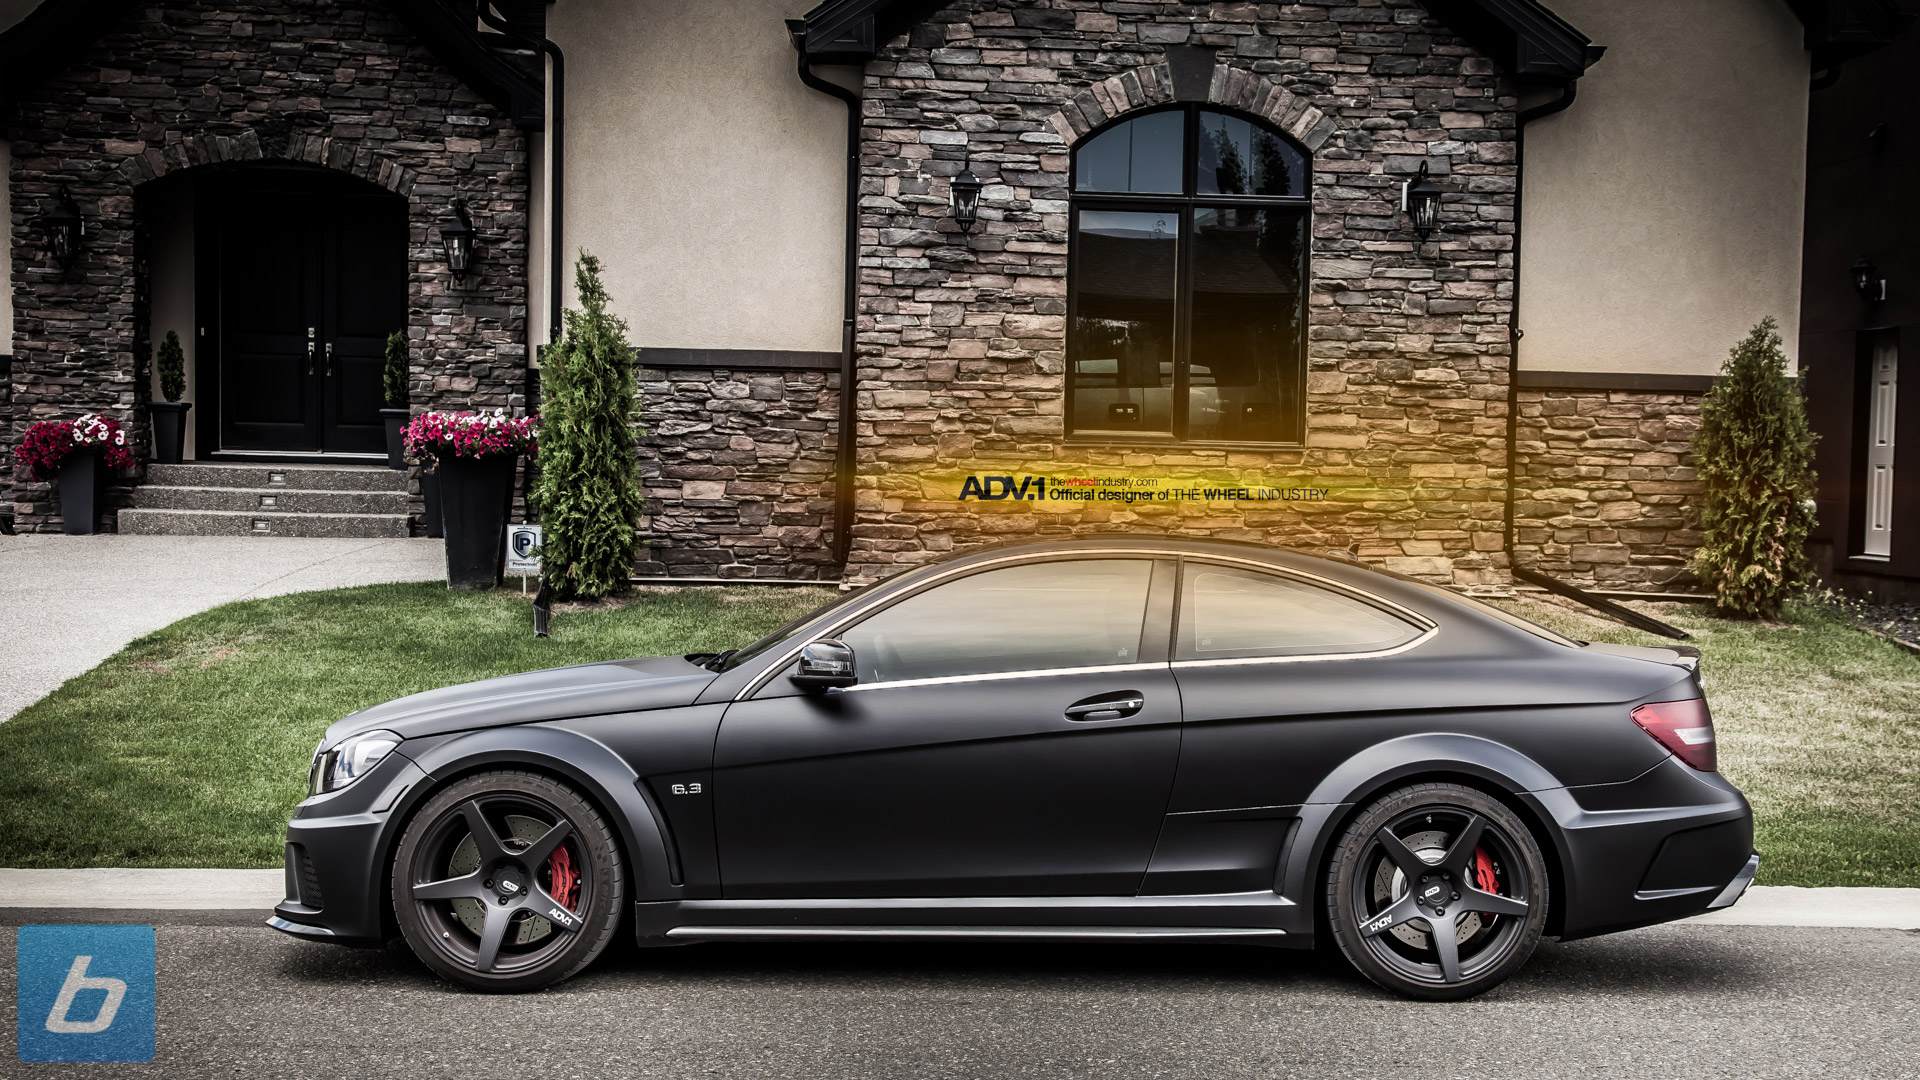 Mercedes benz c63 amg coupe black series eye candy for Mercedes benz c63 amg sedan